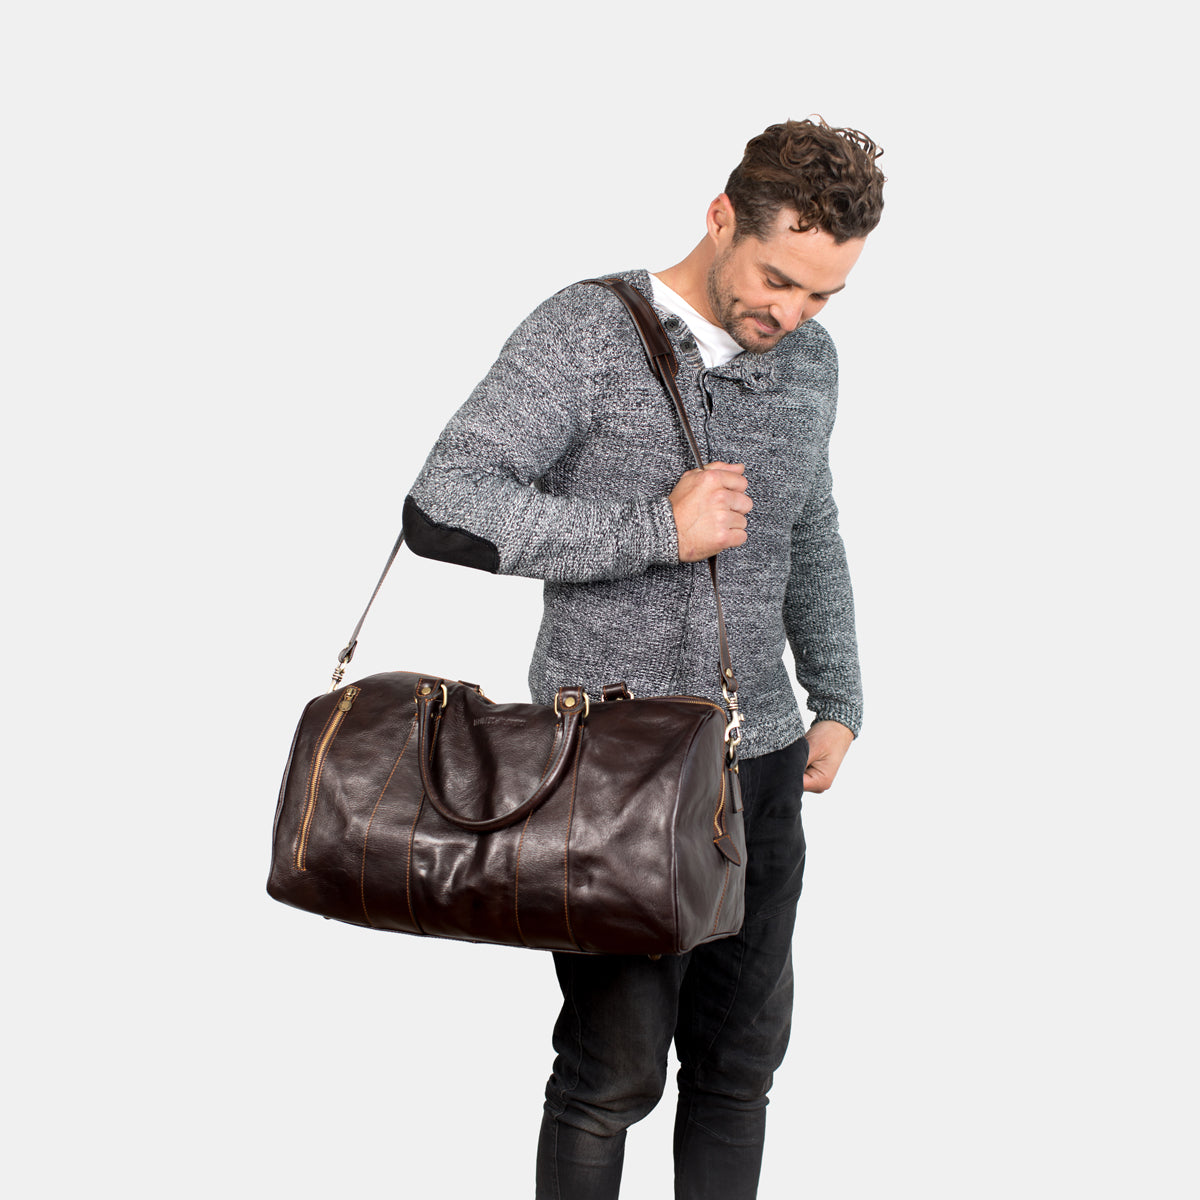 Nardi Chocolate - Leather Weekender Bag with outside pocket